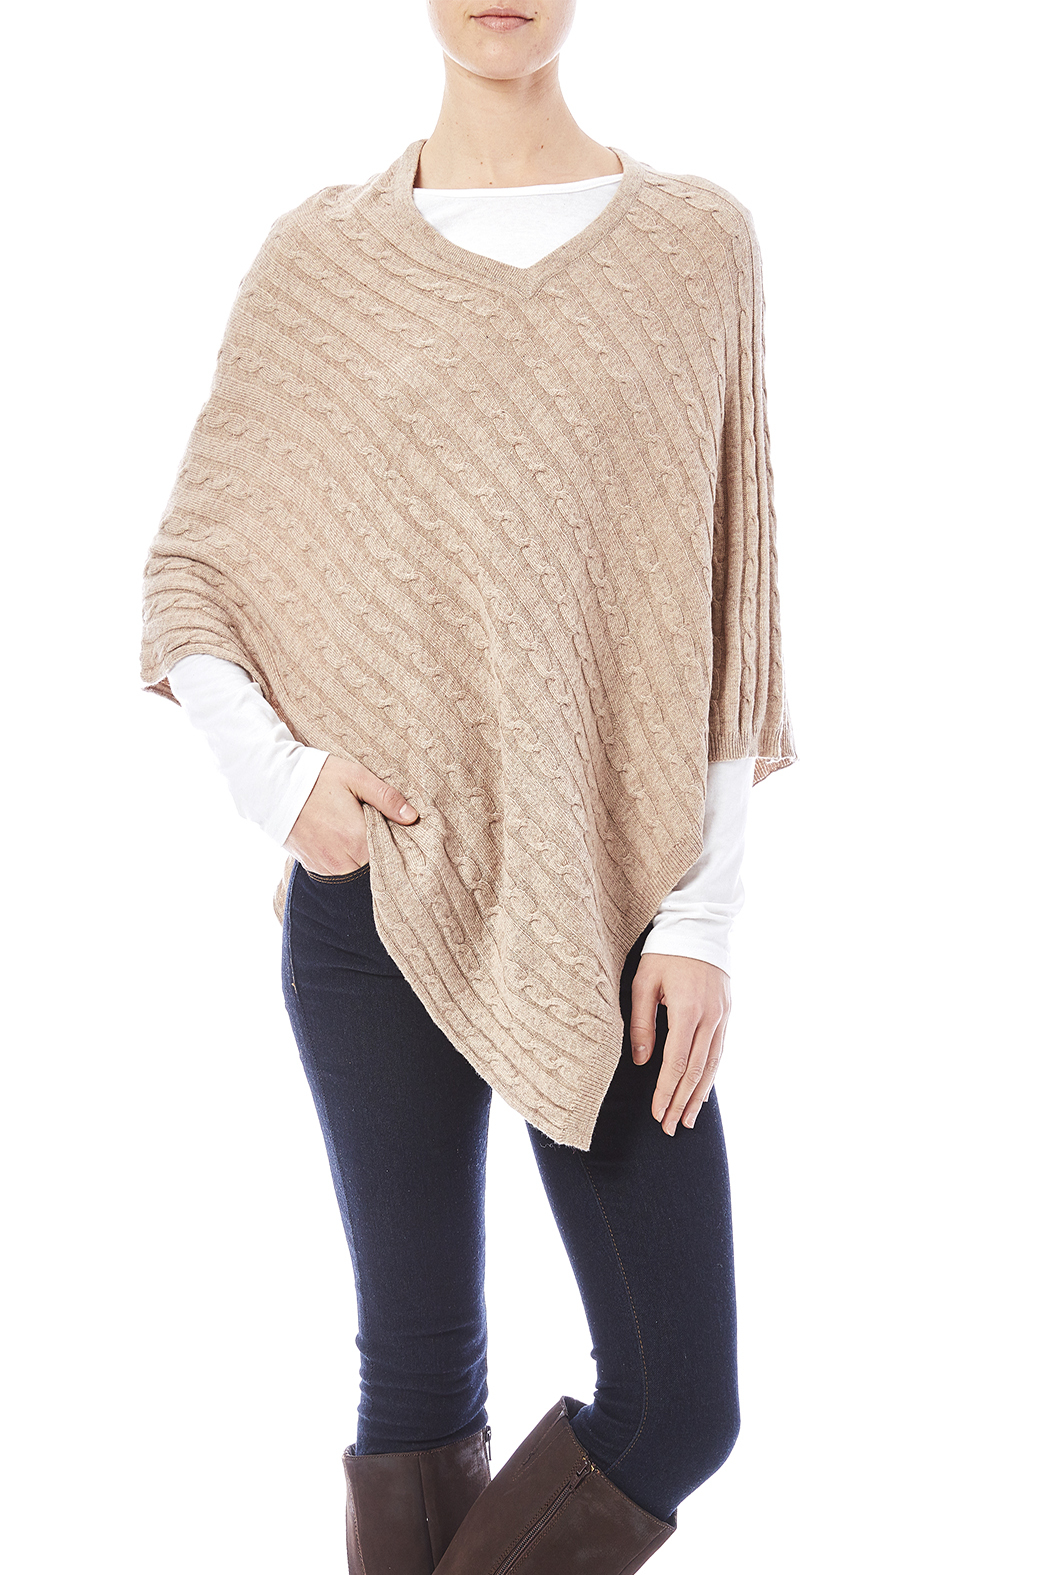 Venezia Cashmere Cashmere Cable-Knit Poncho from San Diego ...